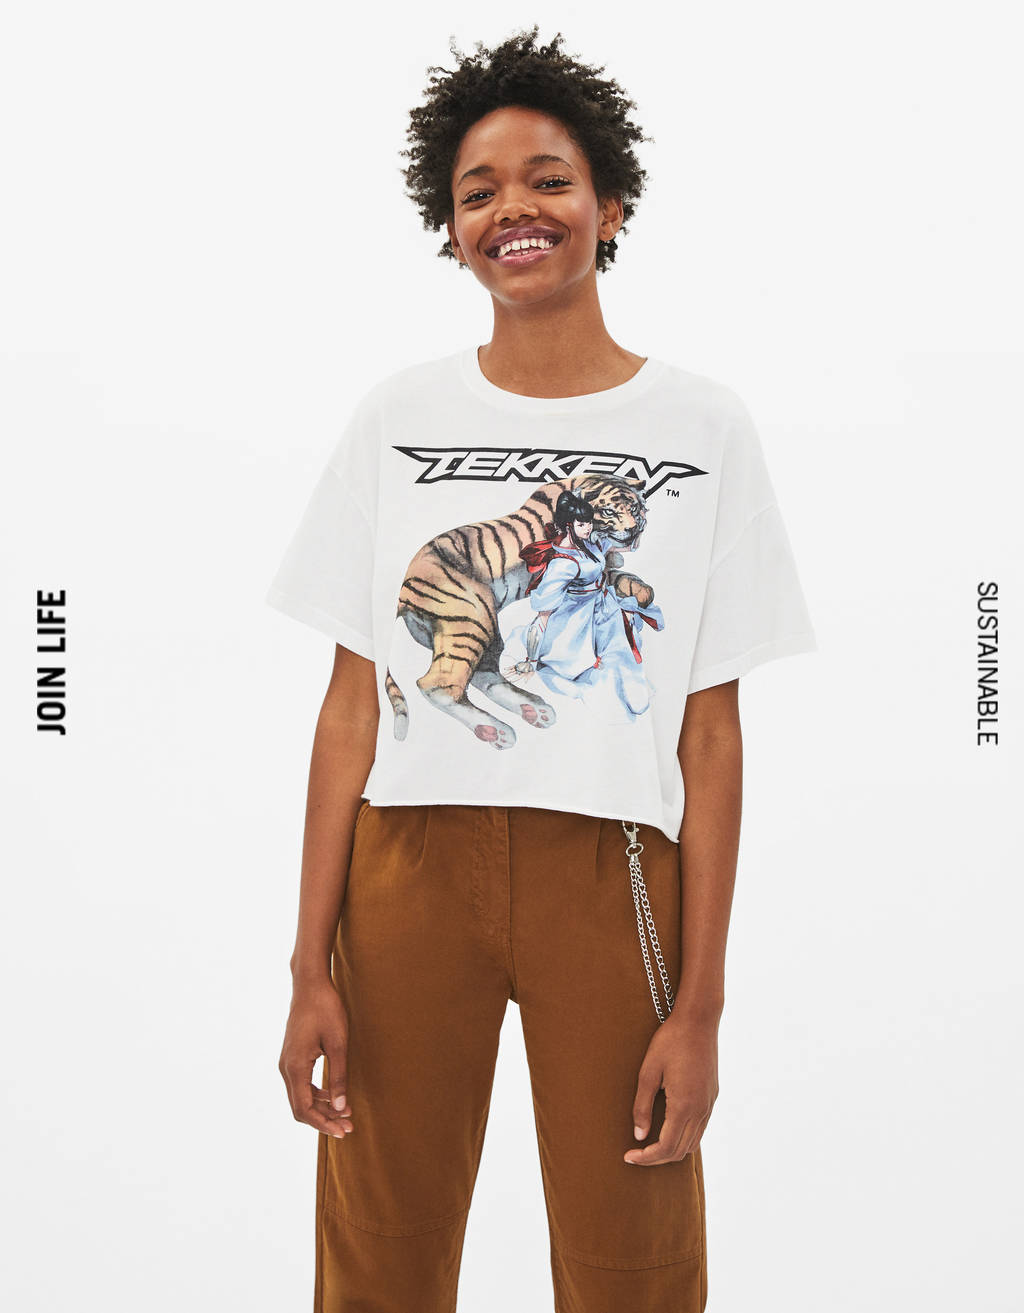 Cropped Tekken T-shirt